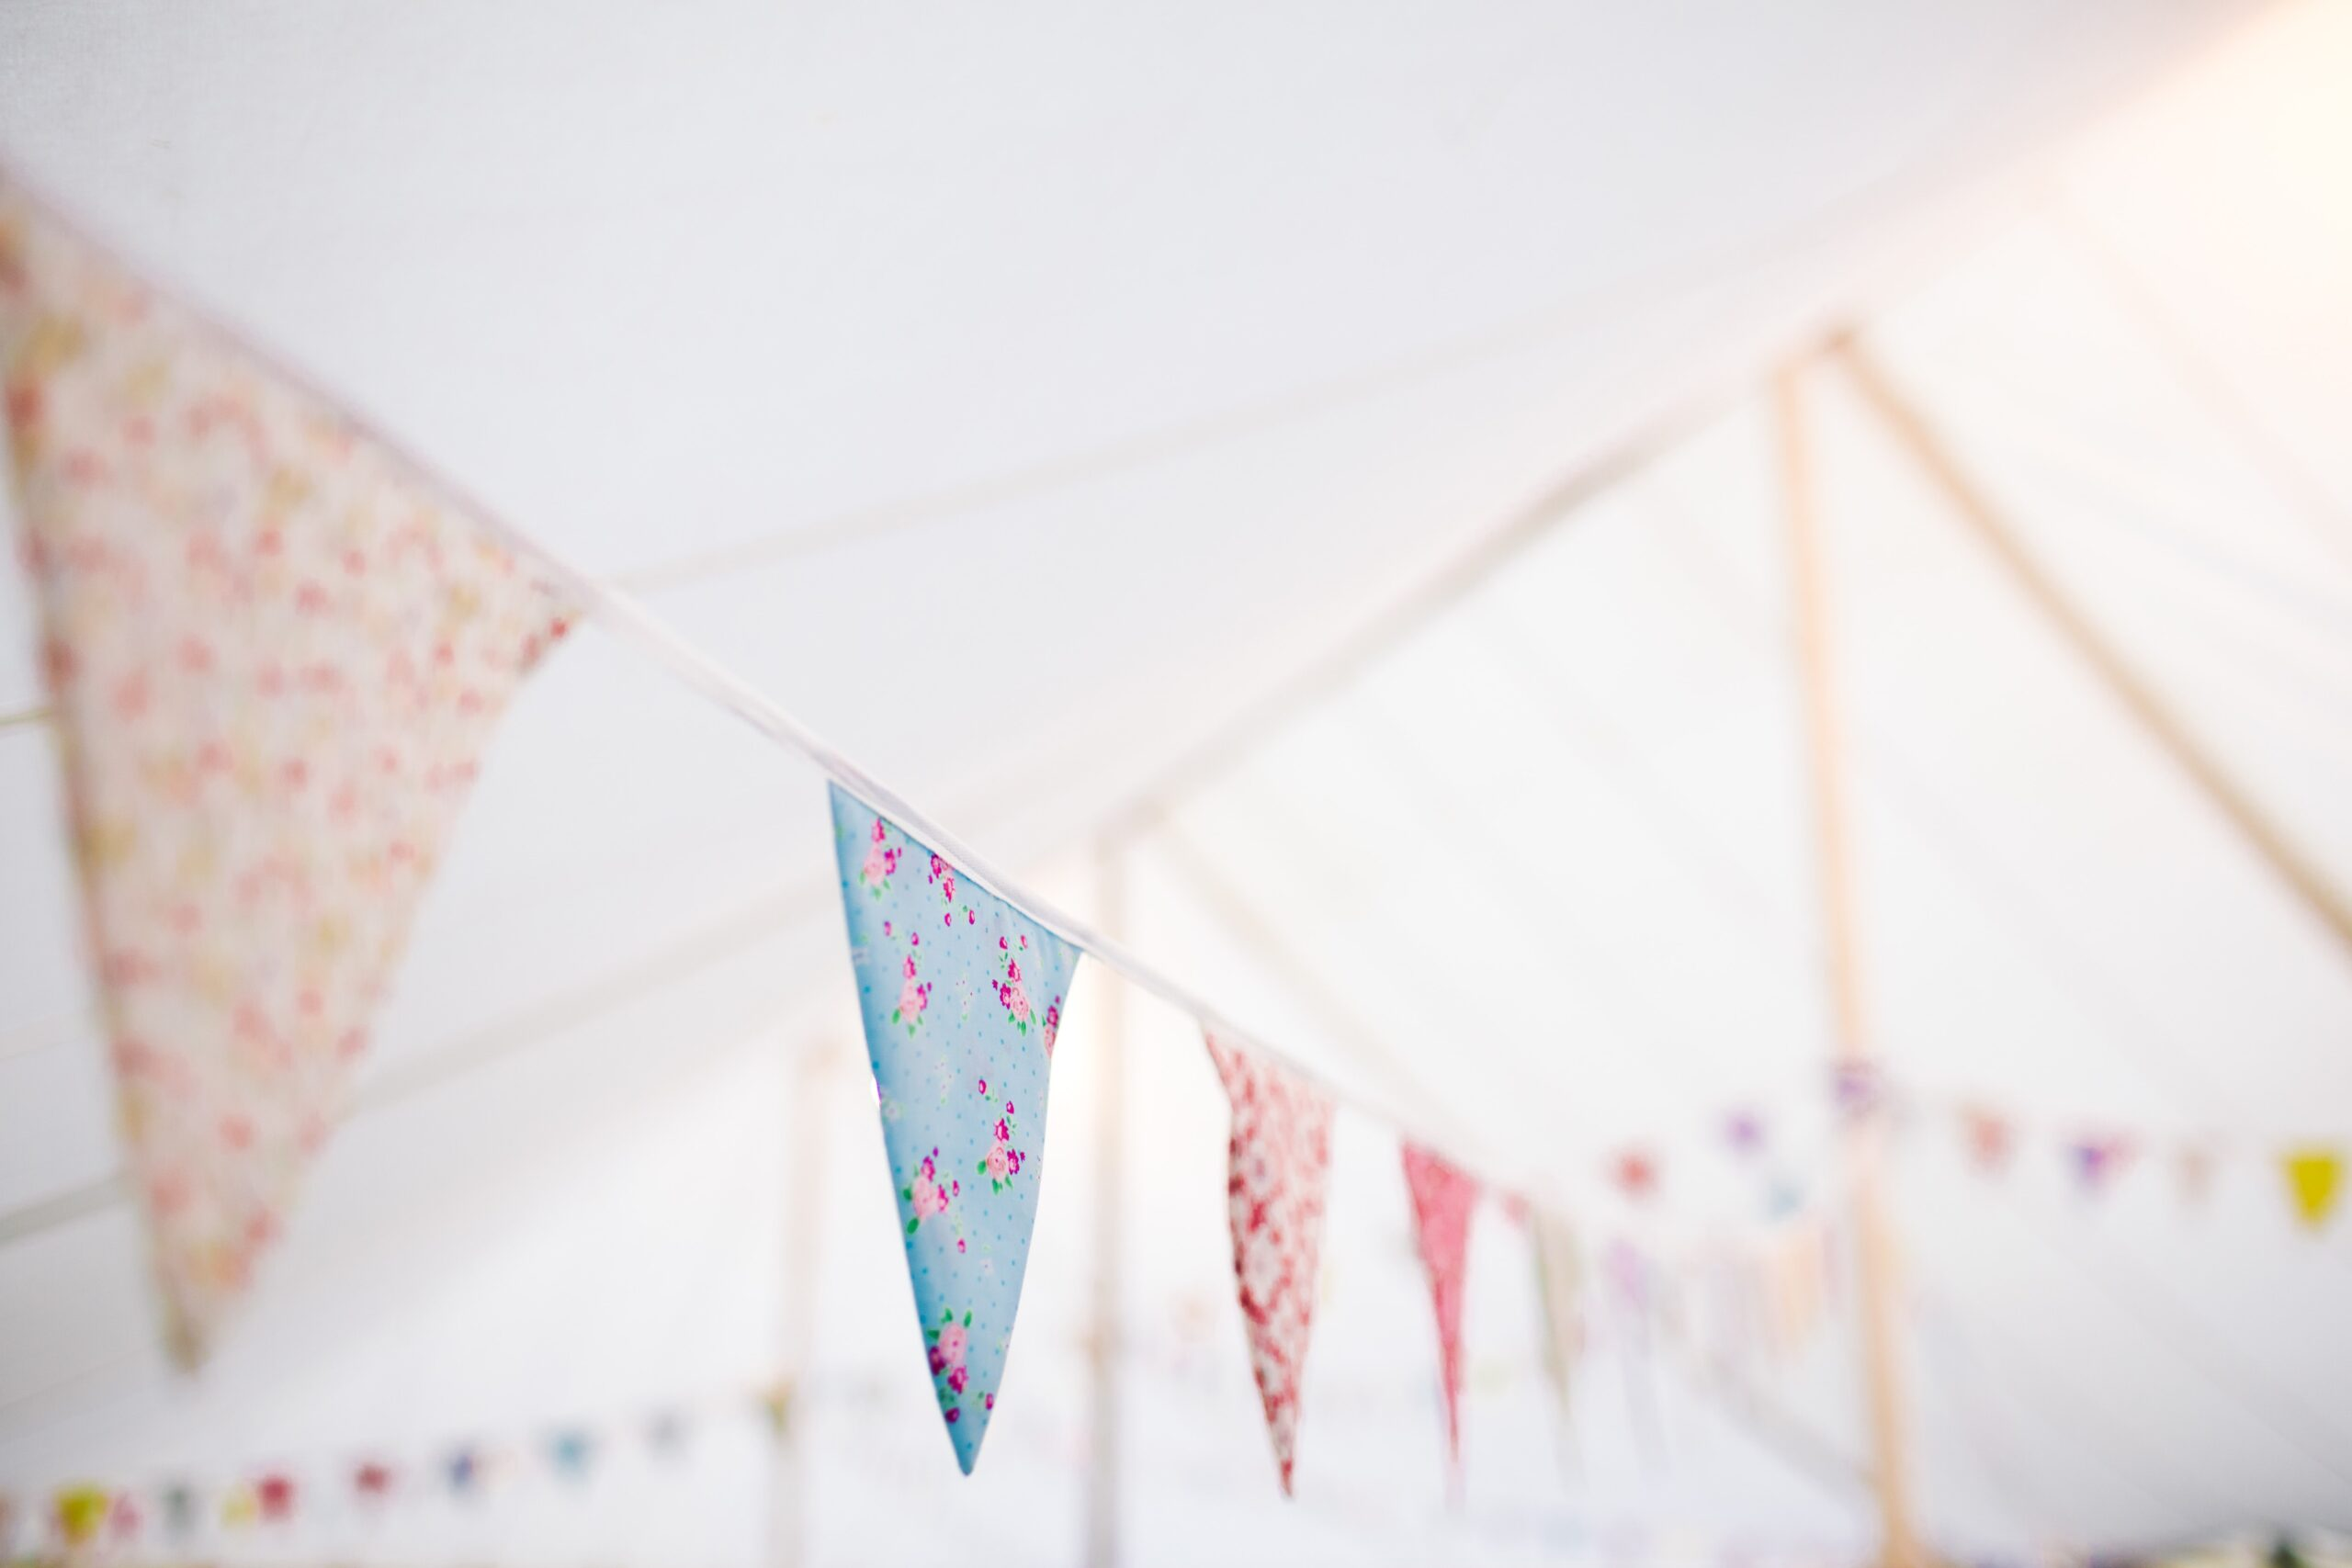 A string of home made bunting made from various colourful fabrics